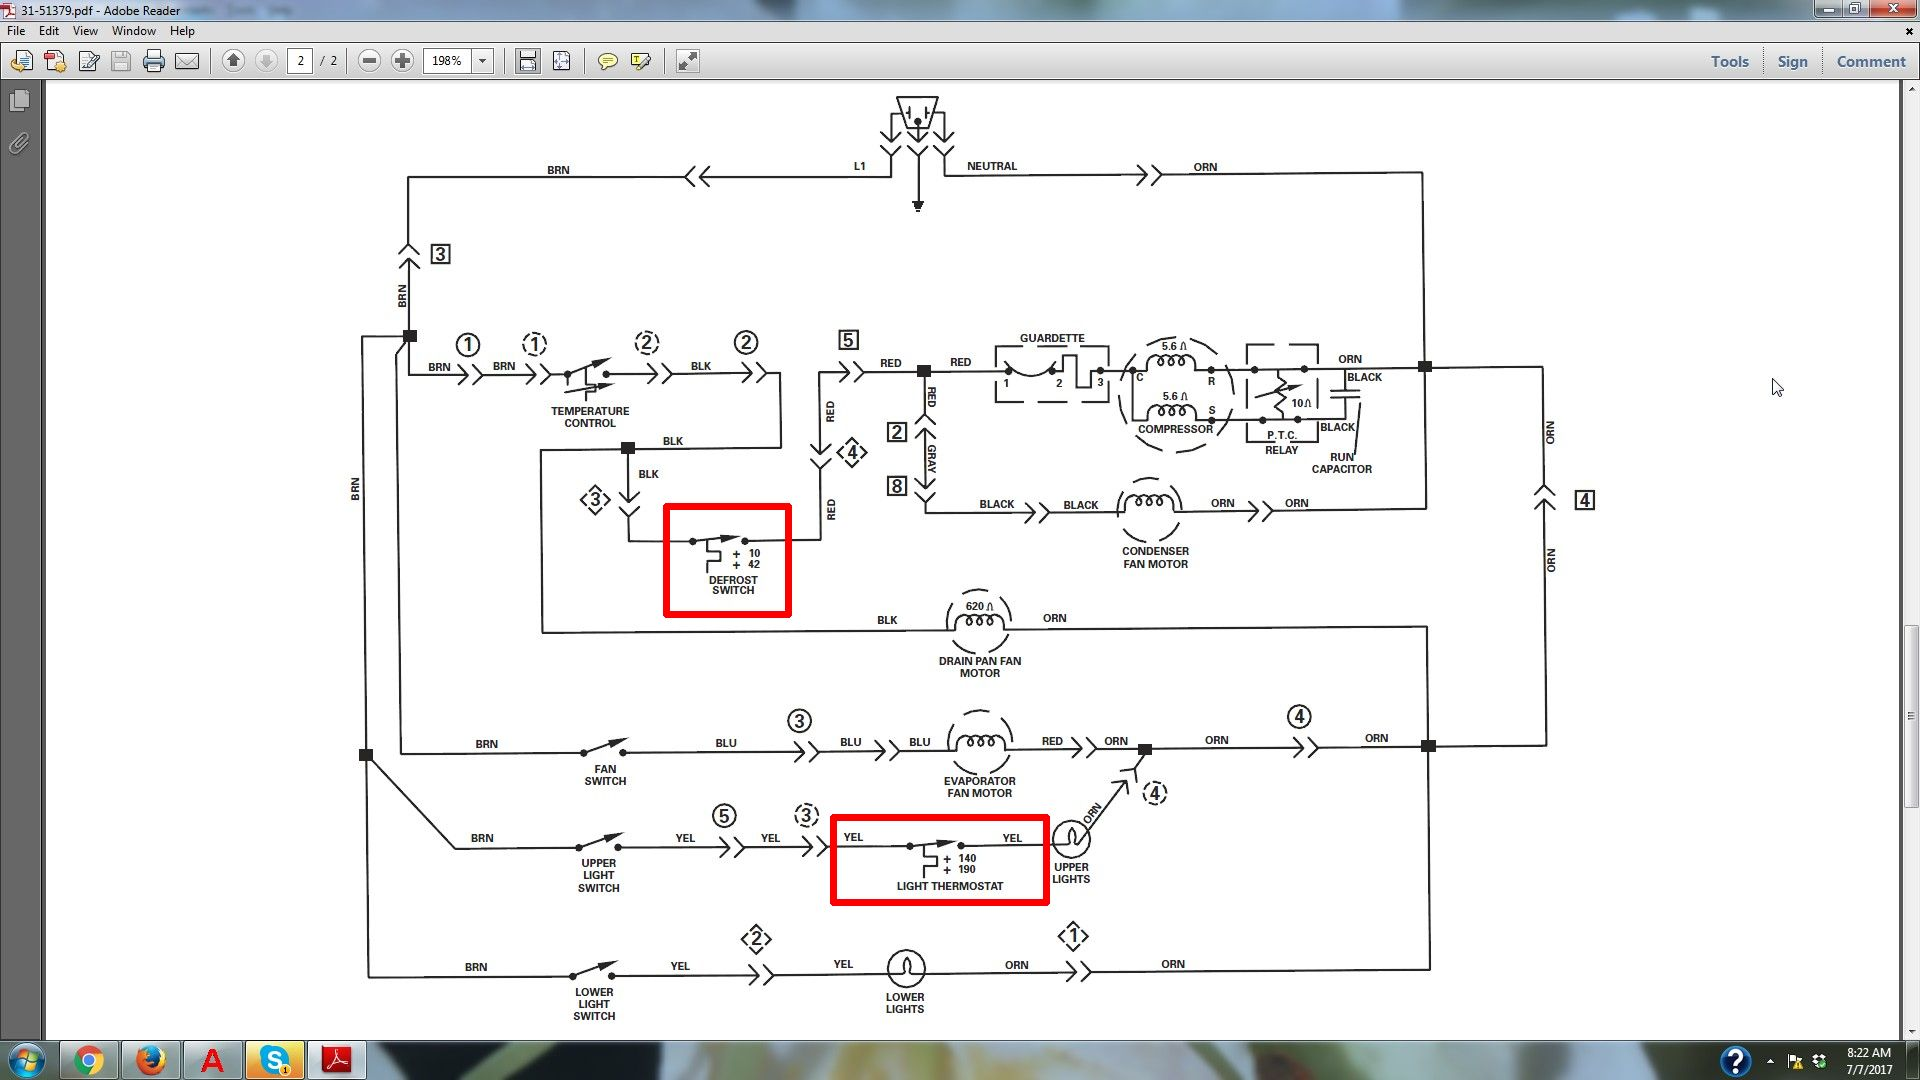 Diagram Fridge Wiring Ge Zir36nmhrh Trusted Schematics Rr7 Only Im Working On A Refrigerator It Has Defrost Relay